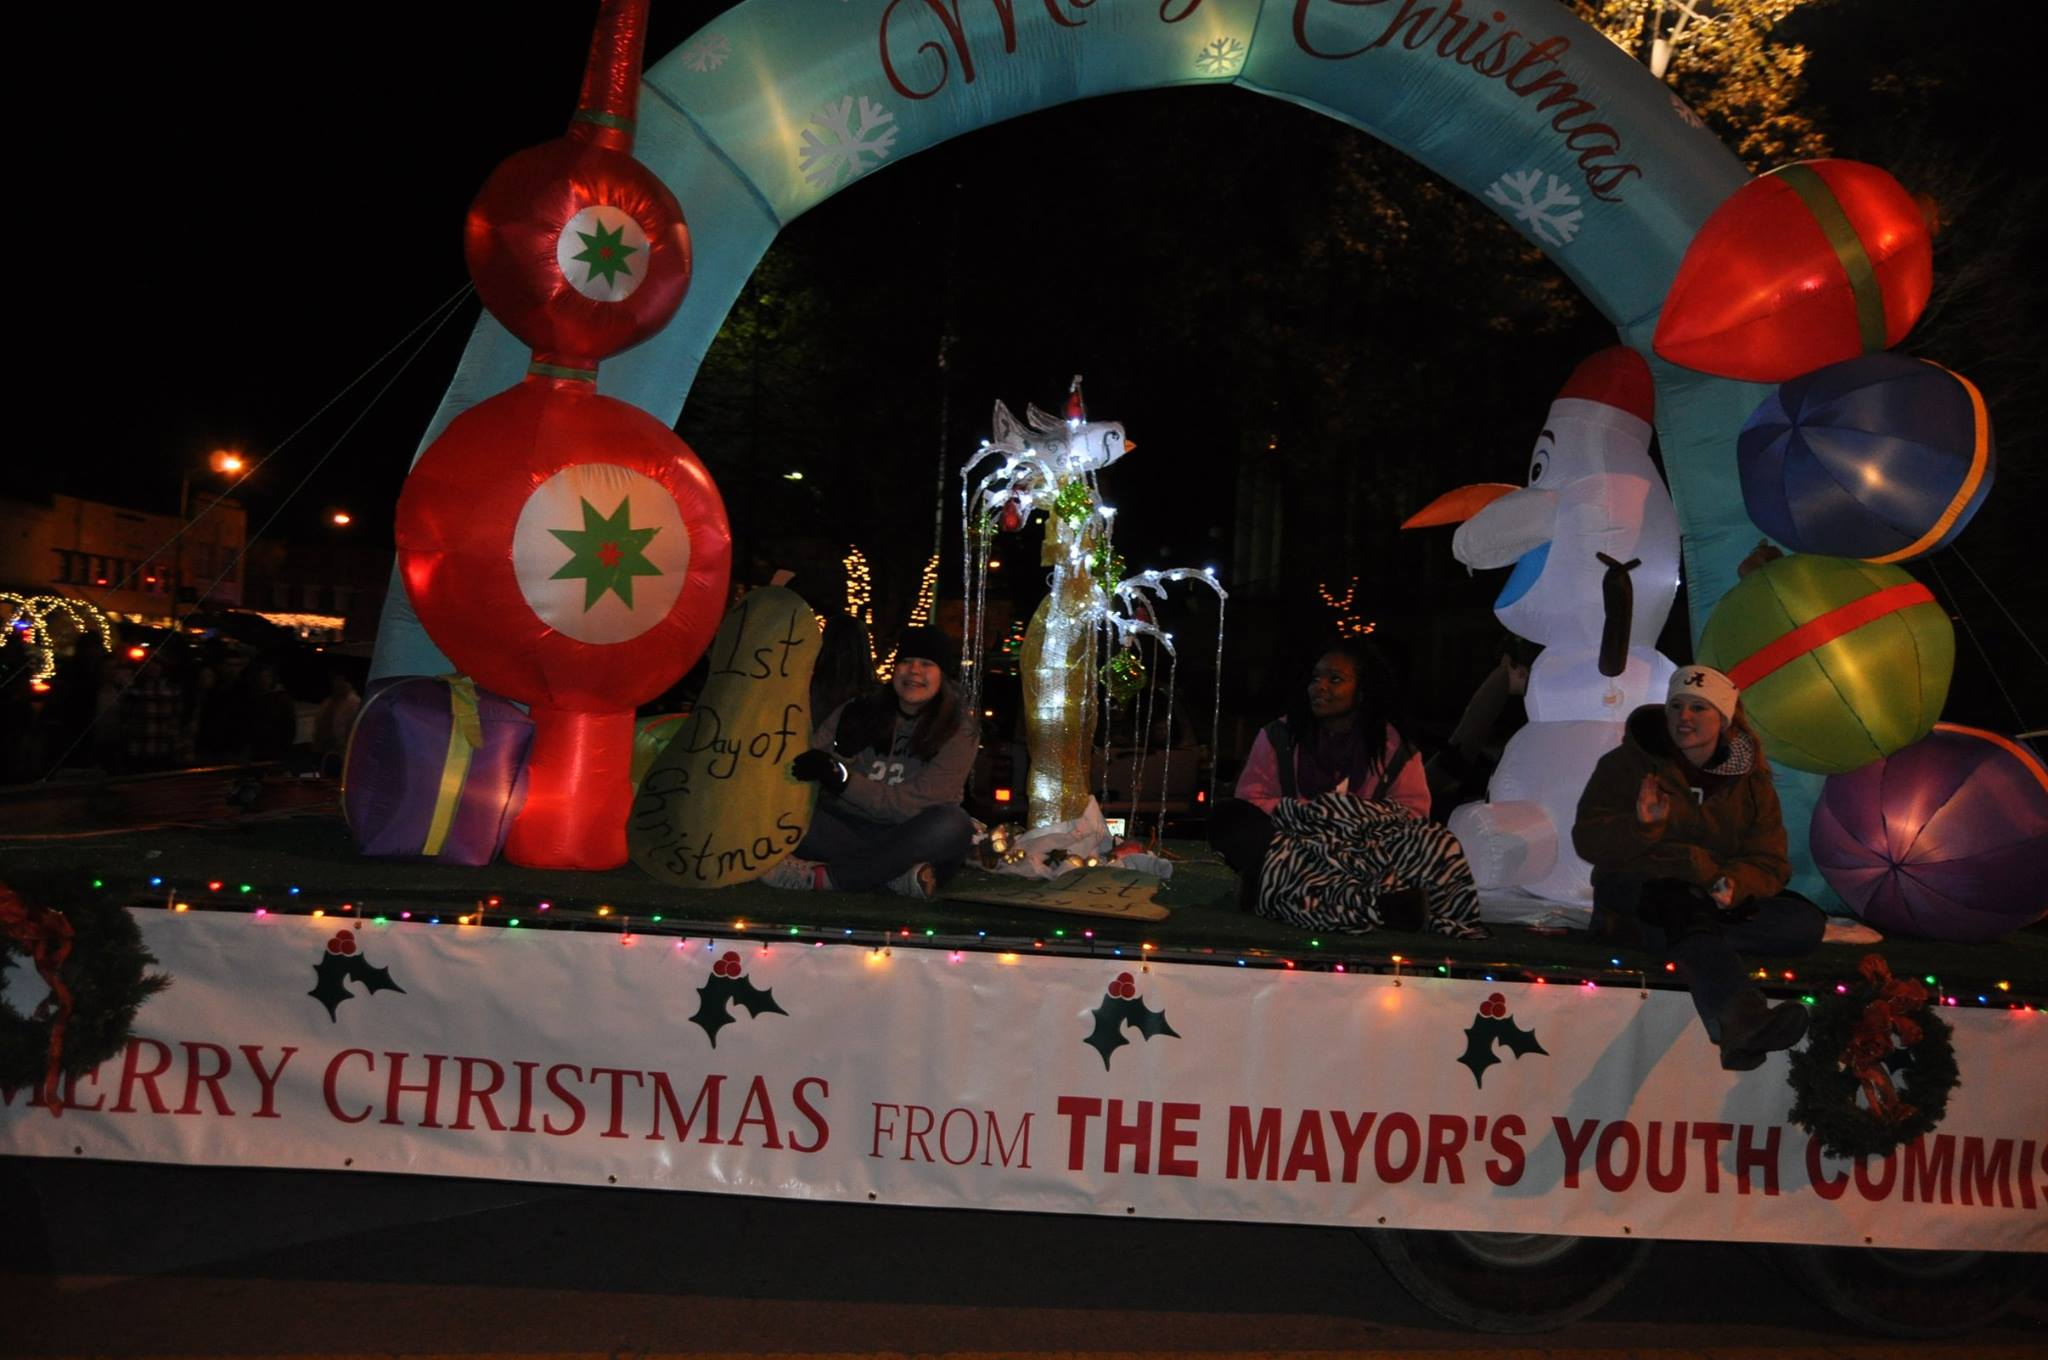 https://alabama-travel.s3.amazonaws.com/partners-uploads/photo/image/5b17f63724f239455600012b/athens_christmas_parade_mayor_youth_comm.jpg